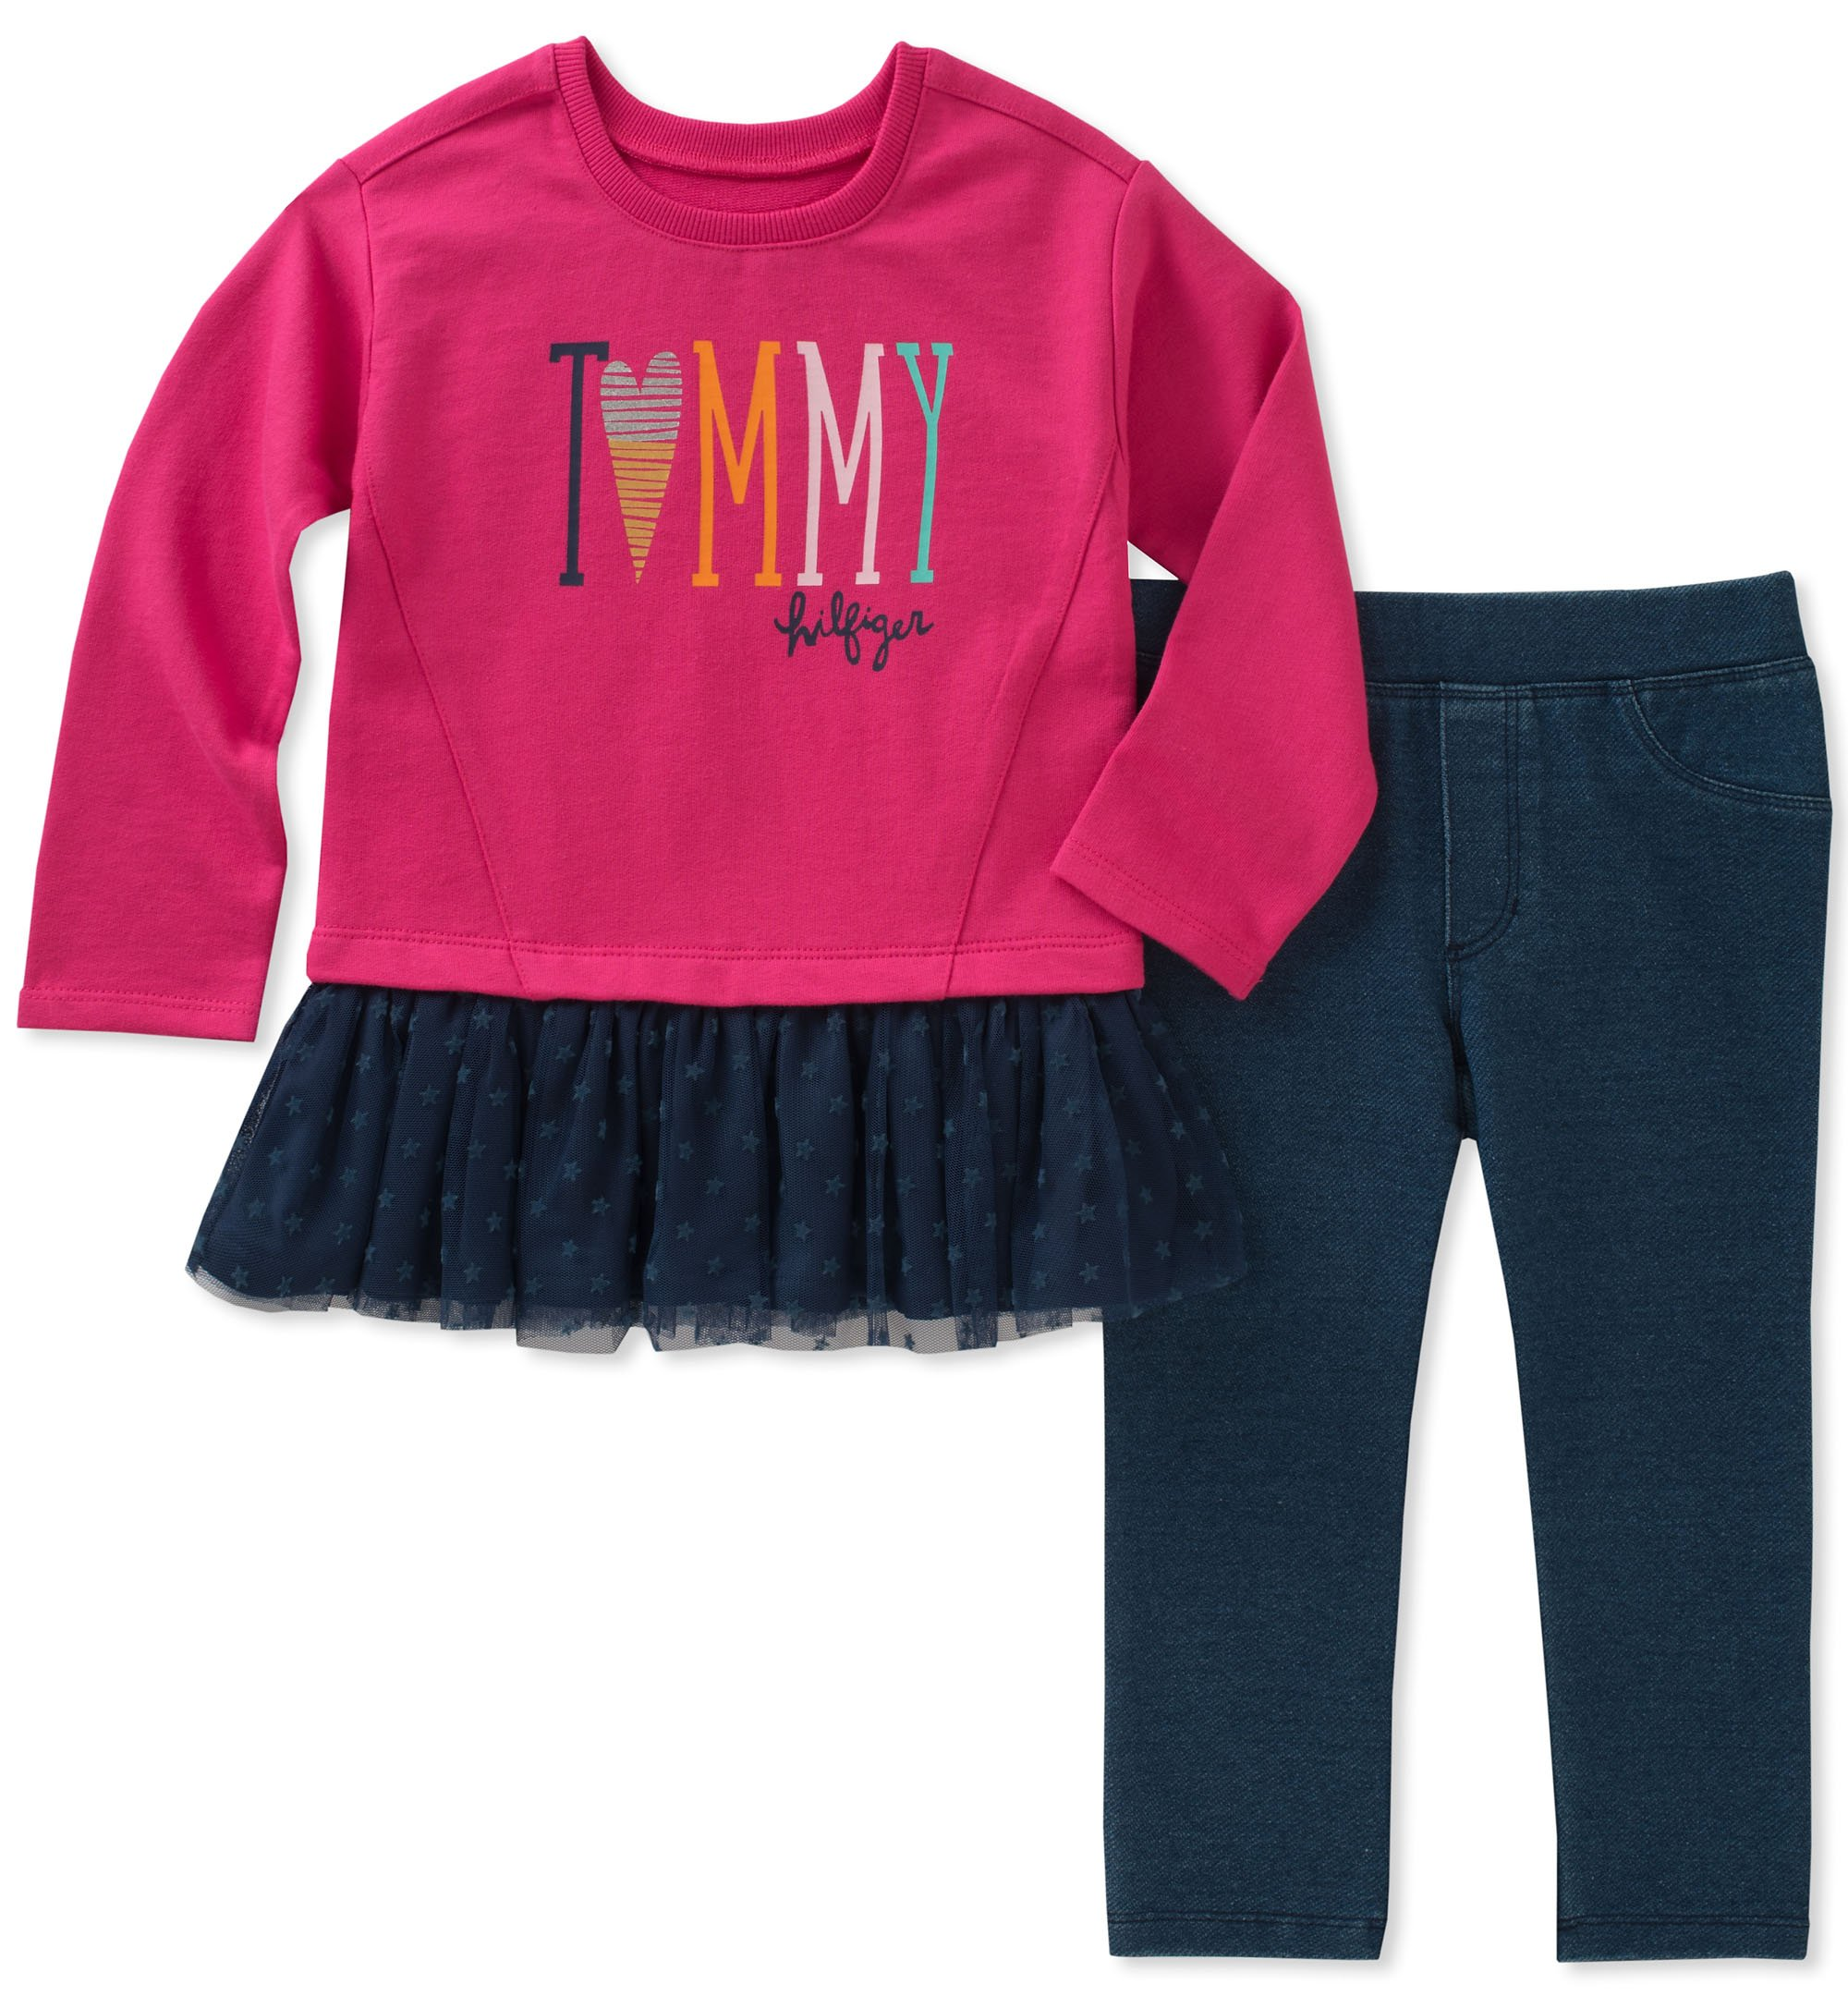 Tommy Hilfiger Baby Girls Long Sleeve Tunic Set Hot Pink Blue 24M